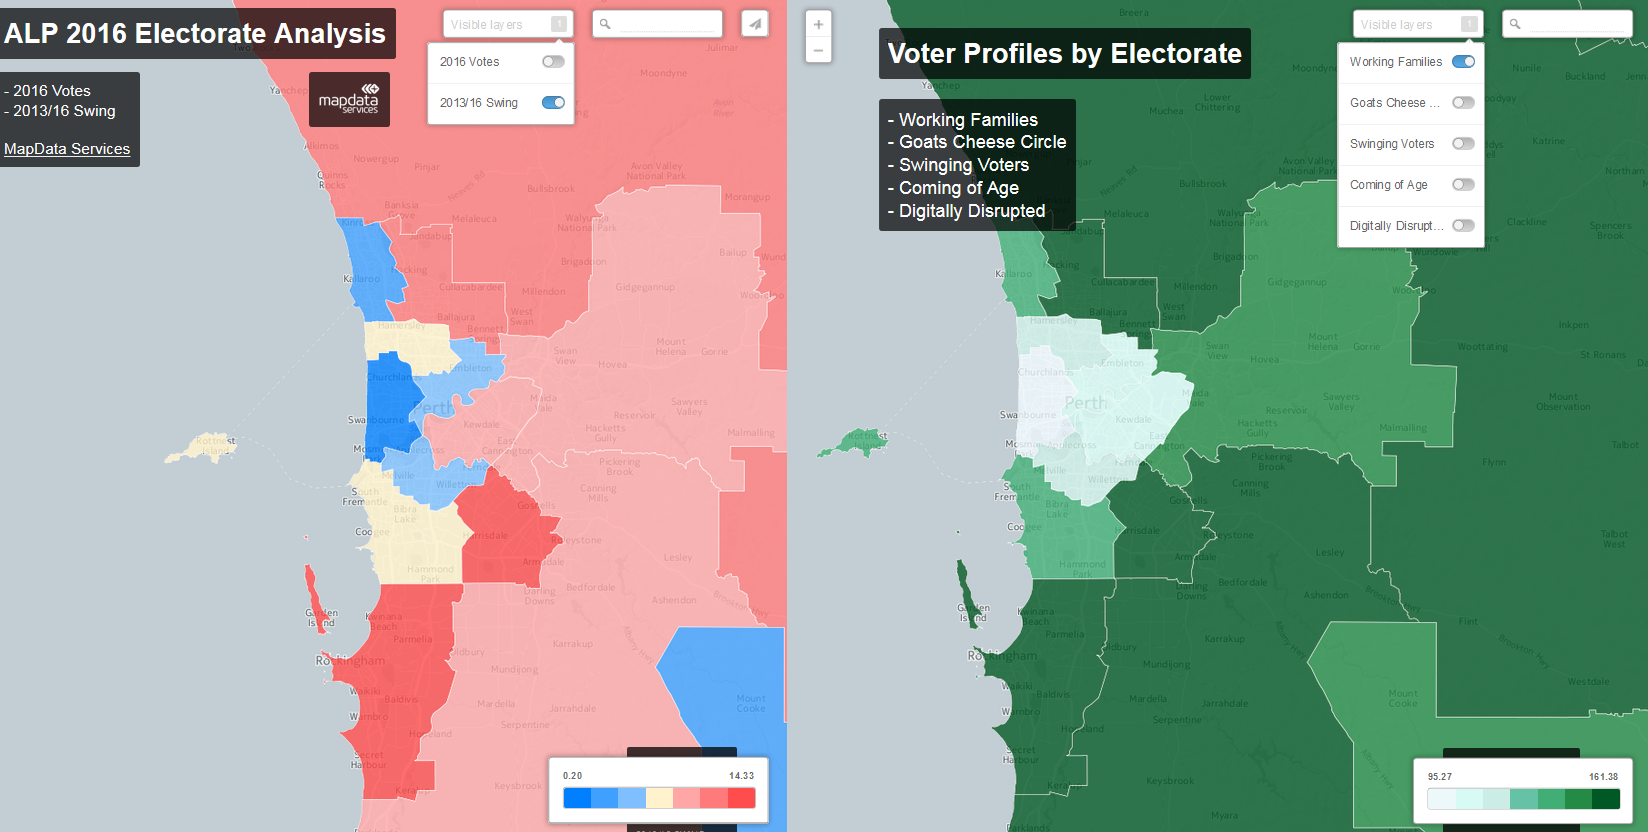 ALP 2016 Electorate Analysis and Voter Profiles by Electorate